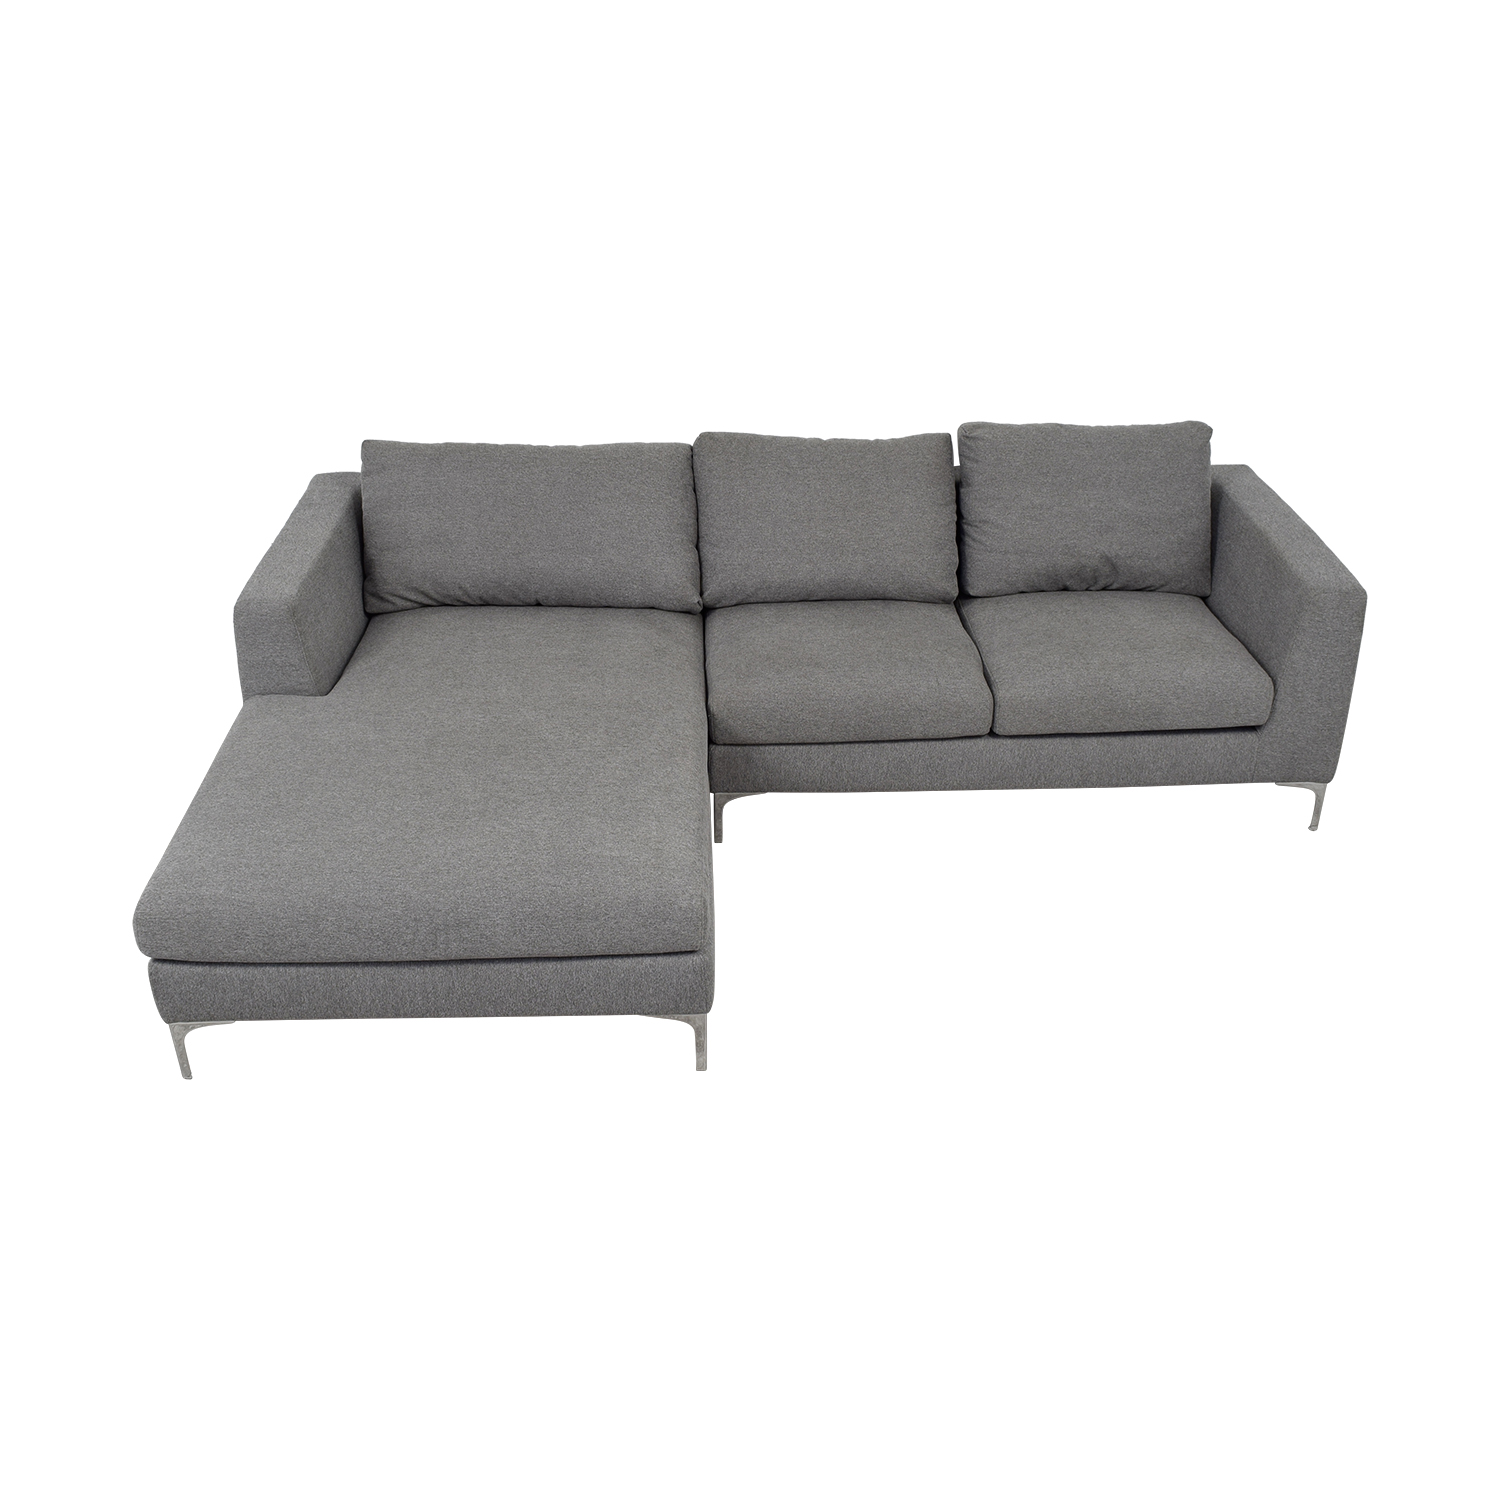 Asher Grey Left Chaise Sectional Sofas